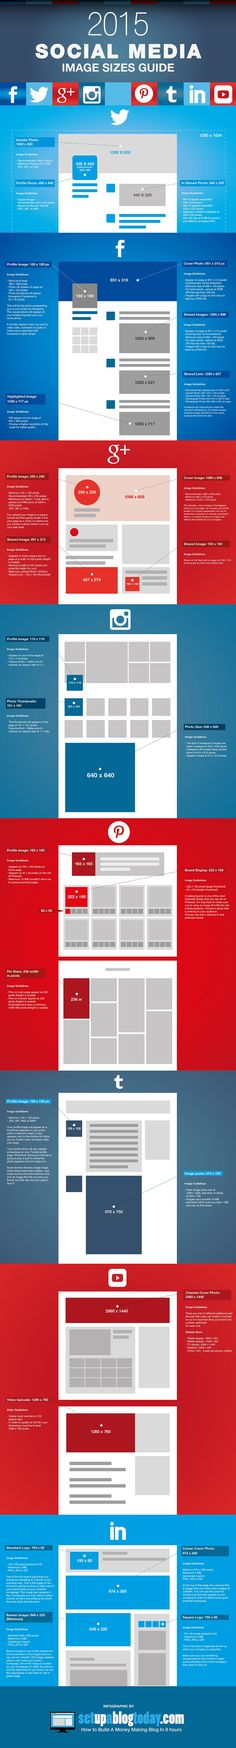 2015 Social Media Guide Ampliar imágen